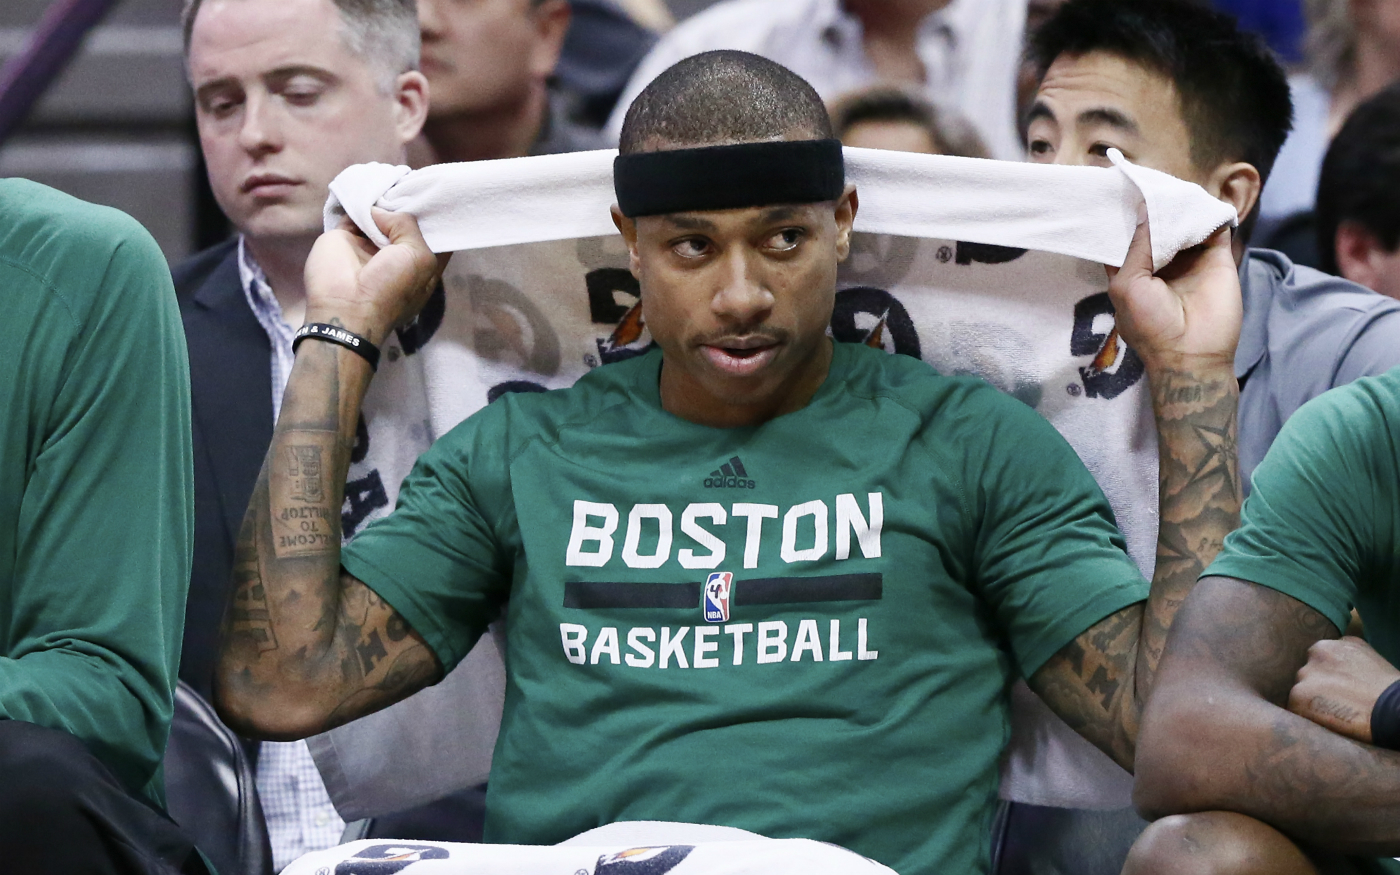 Sinon, Isaiah Thomas a récolté un vote pour les All-Defensive Teams